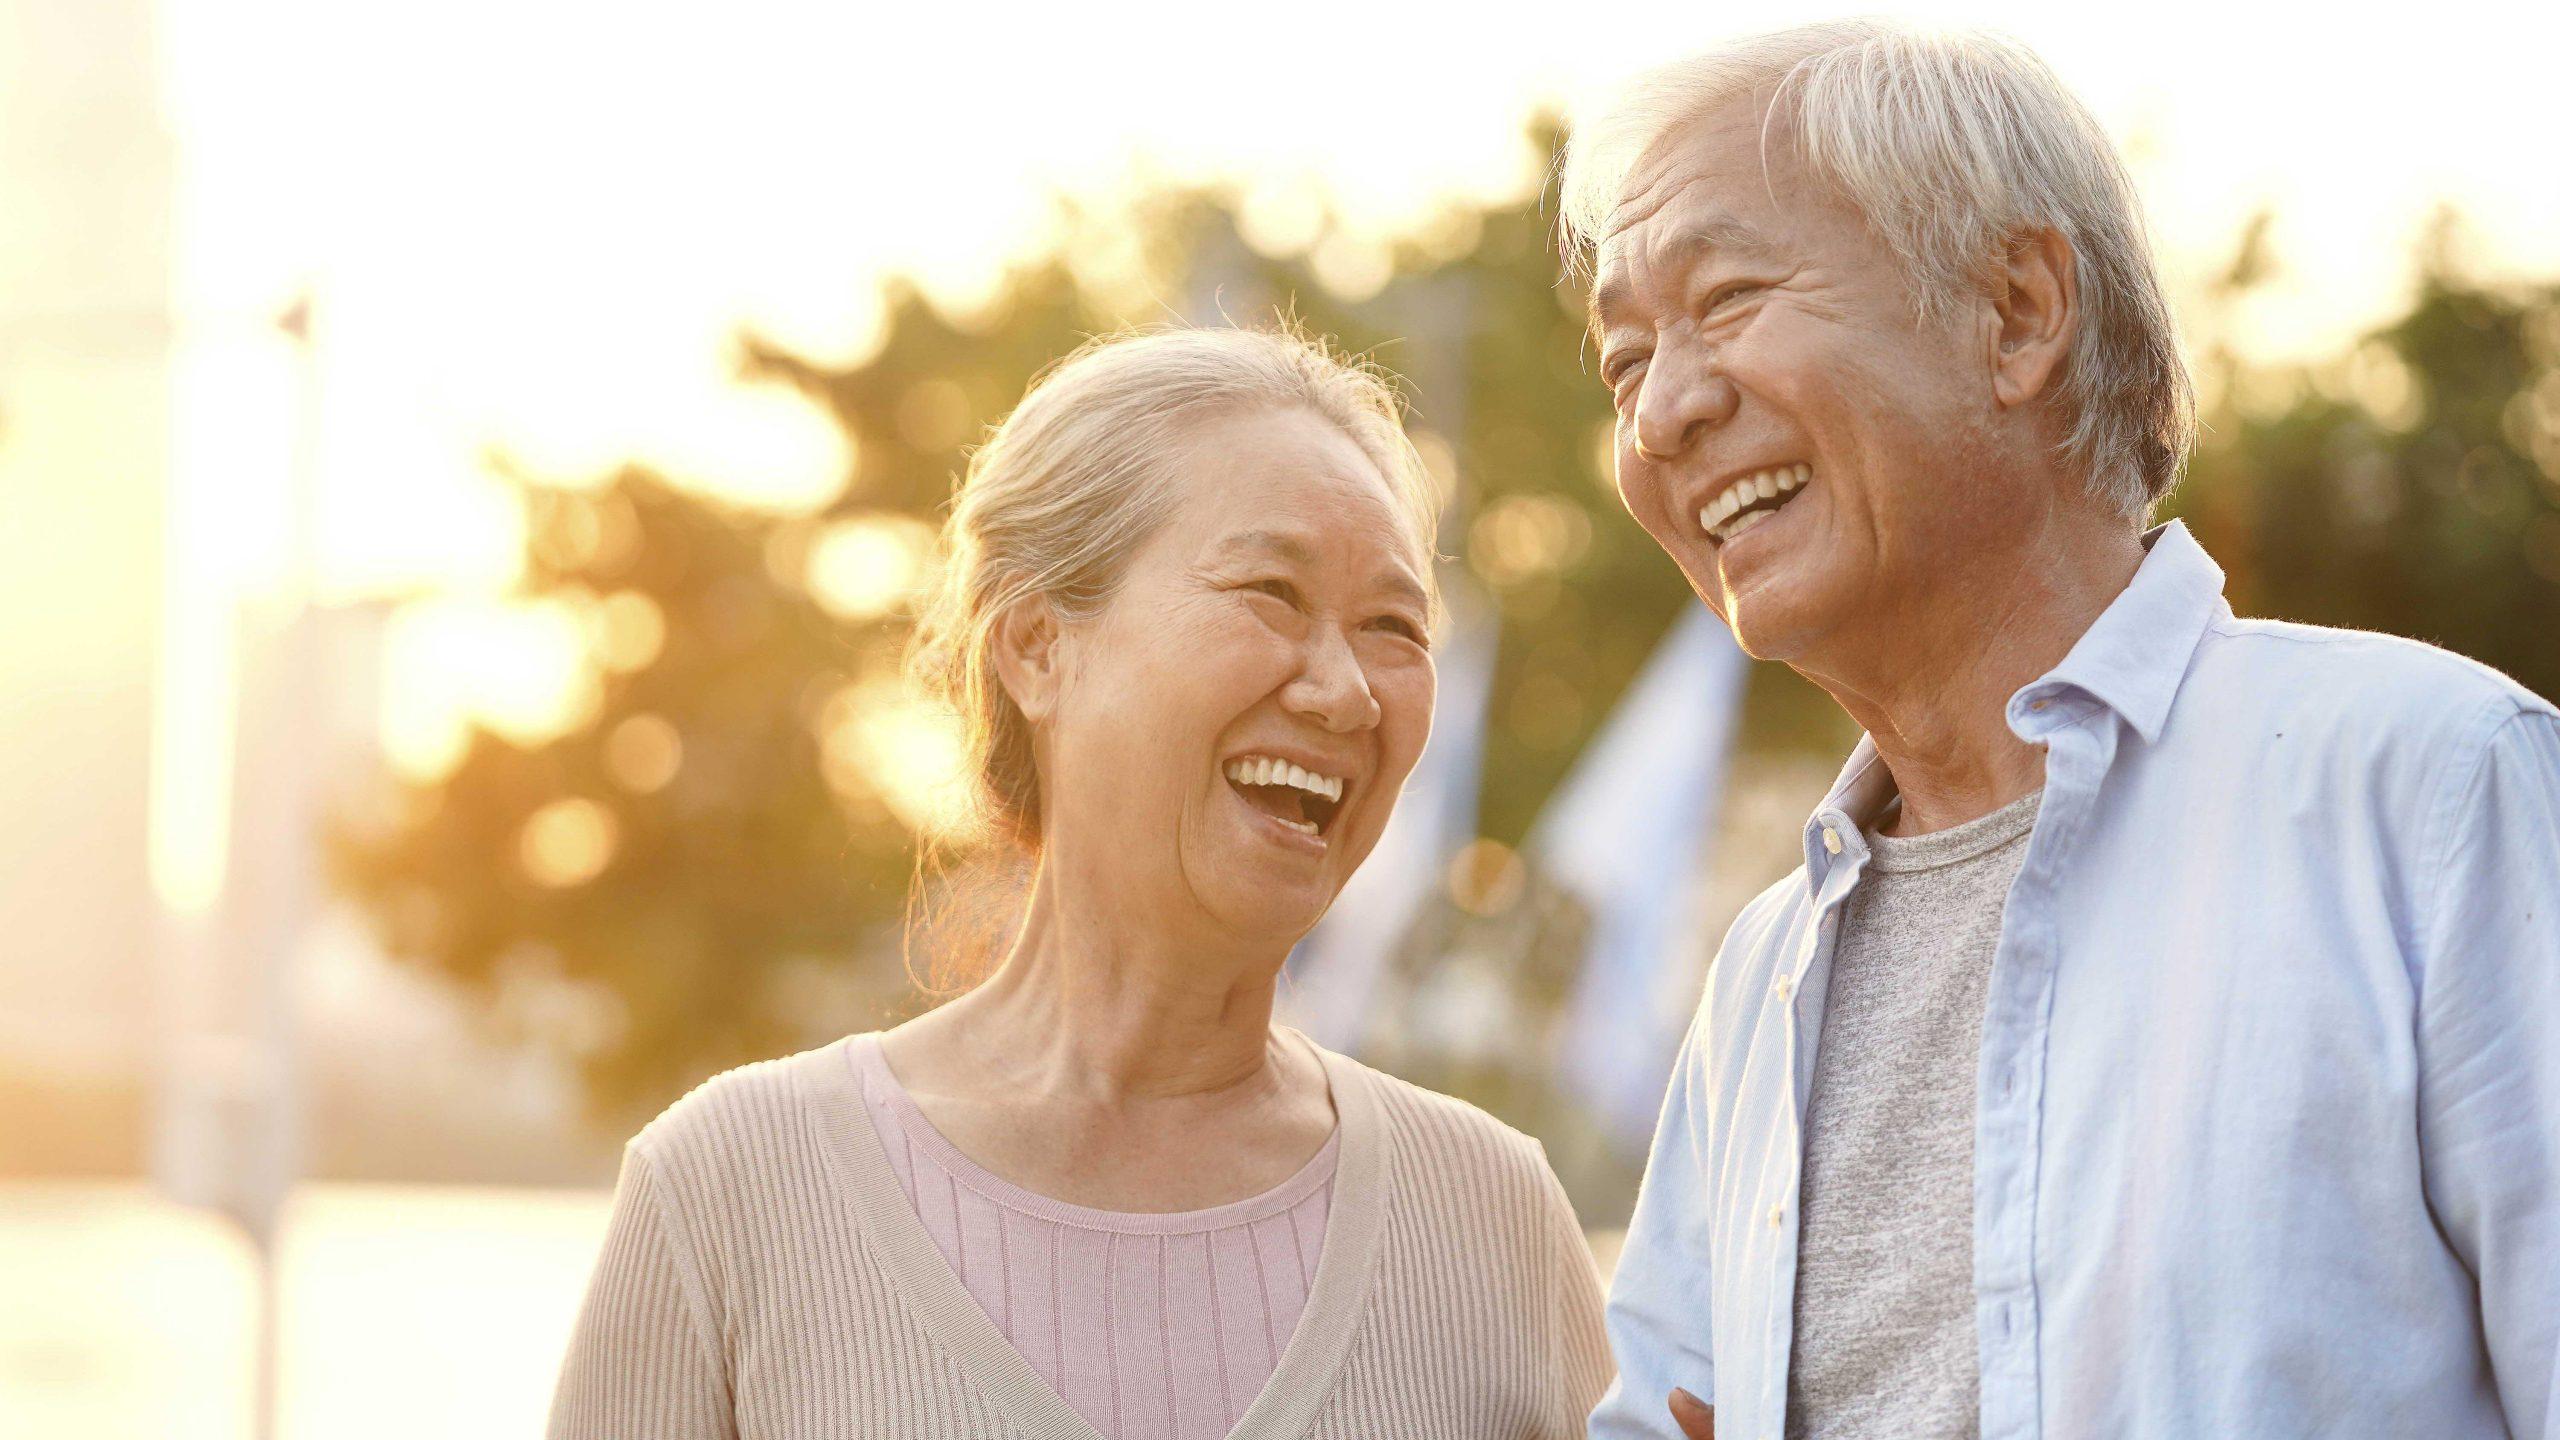 Happy Senior Couple Laughing in the Sunshine